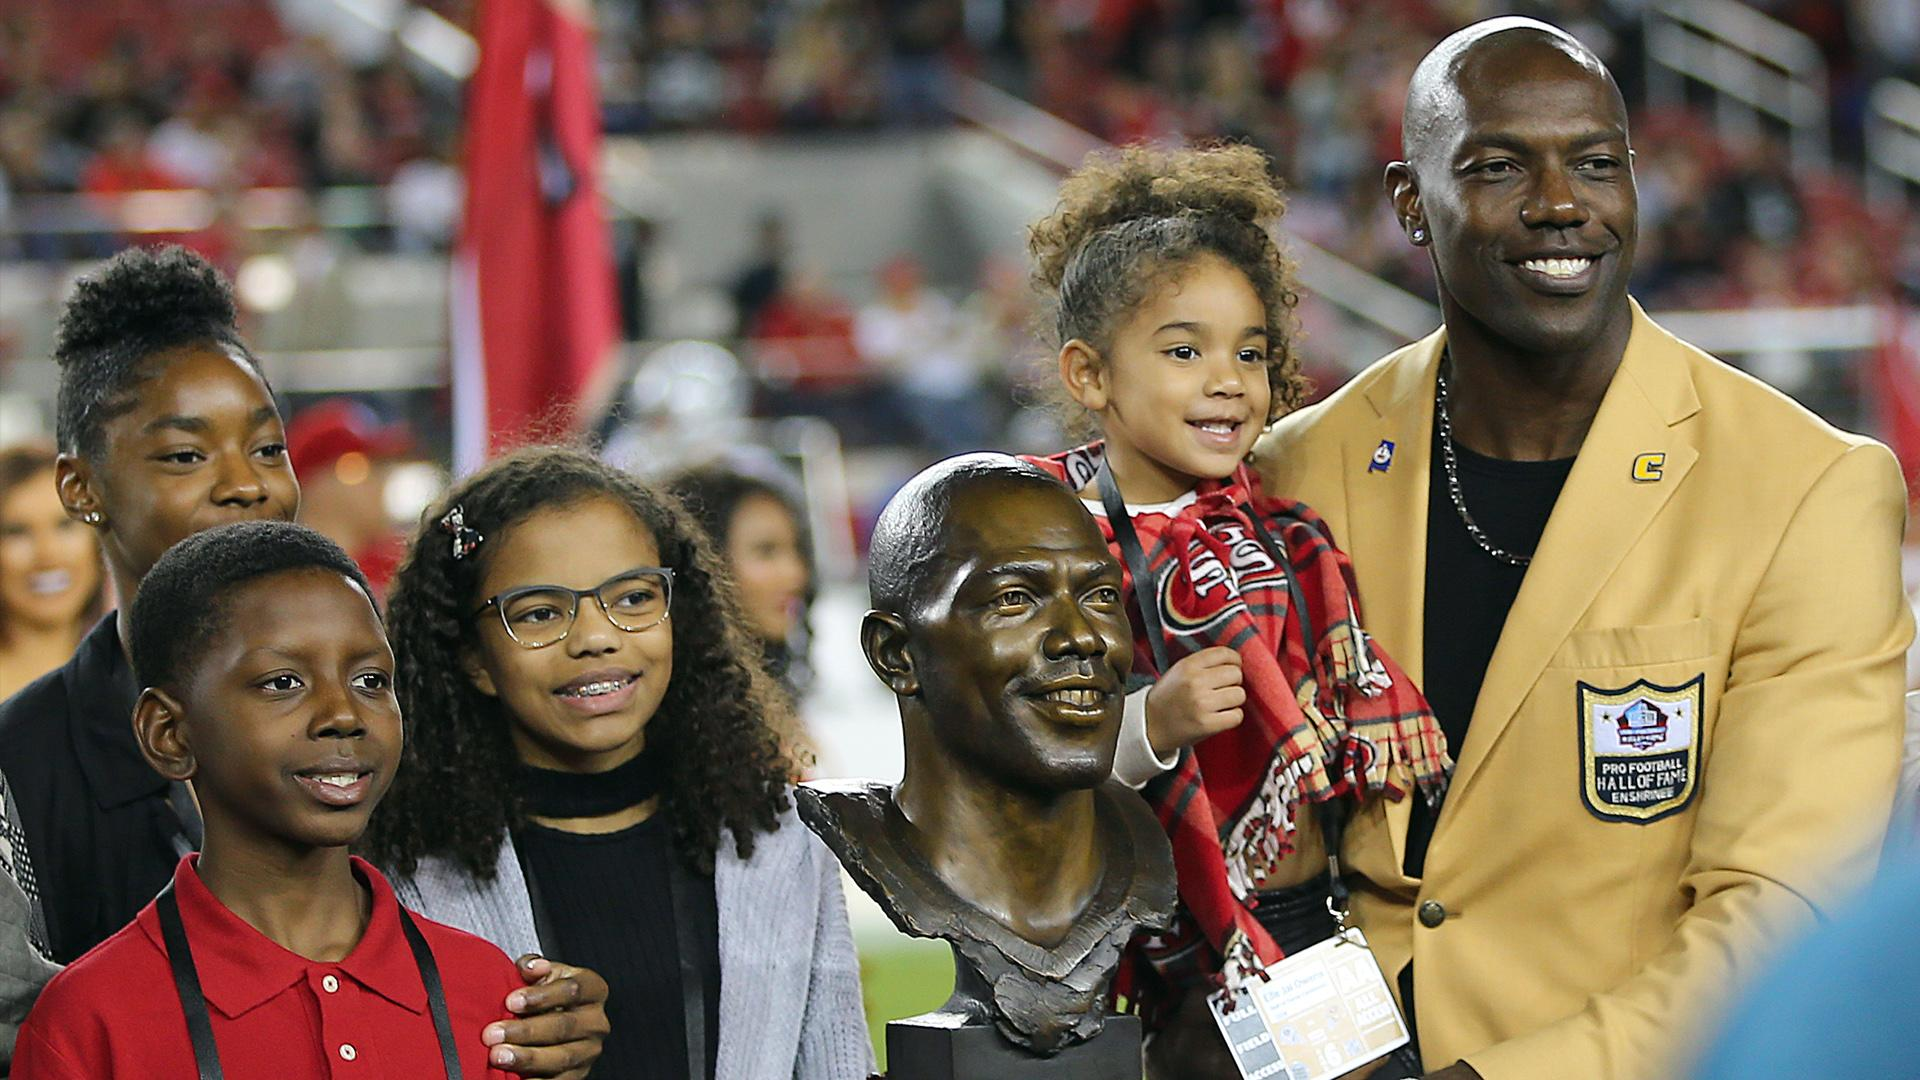 Ex-49ers star Terrell Owens always welcomed at Pro Football Hall of Fame